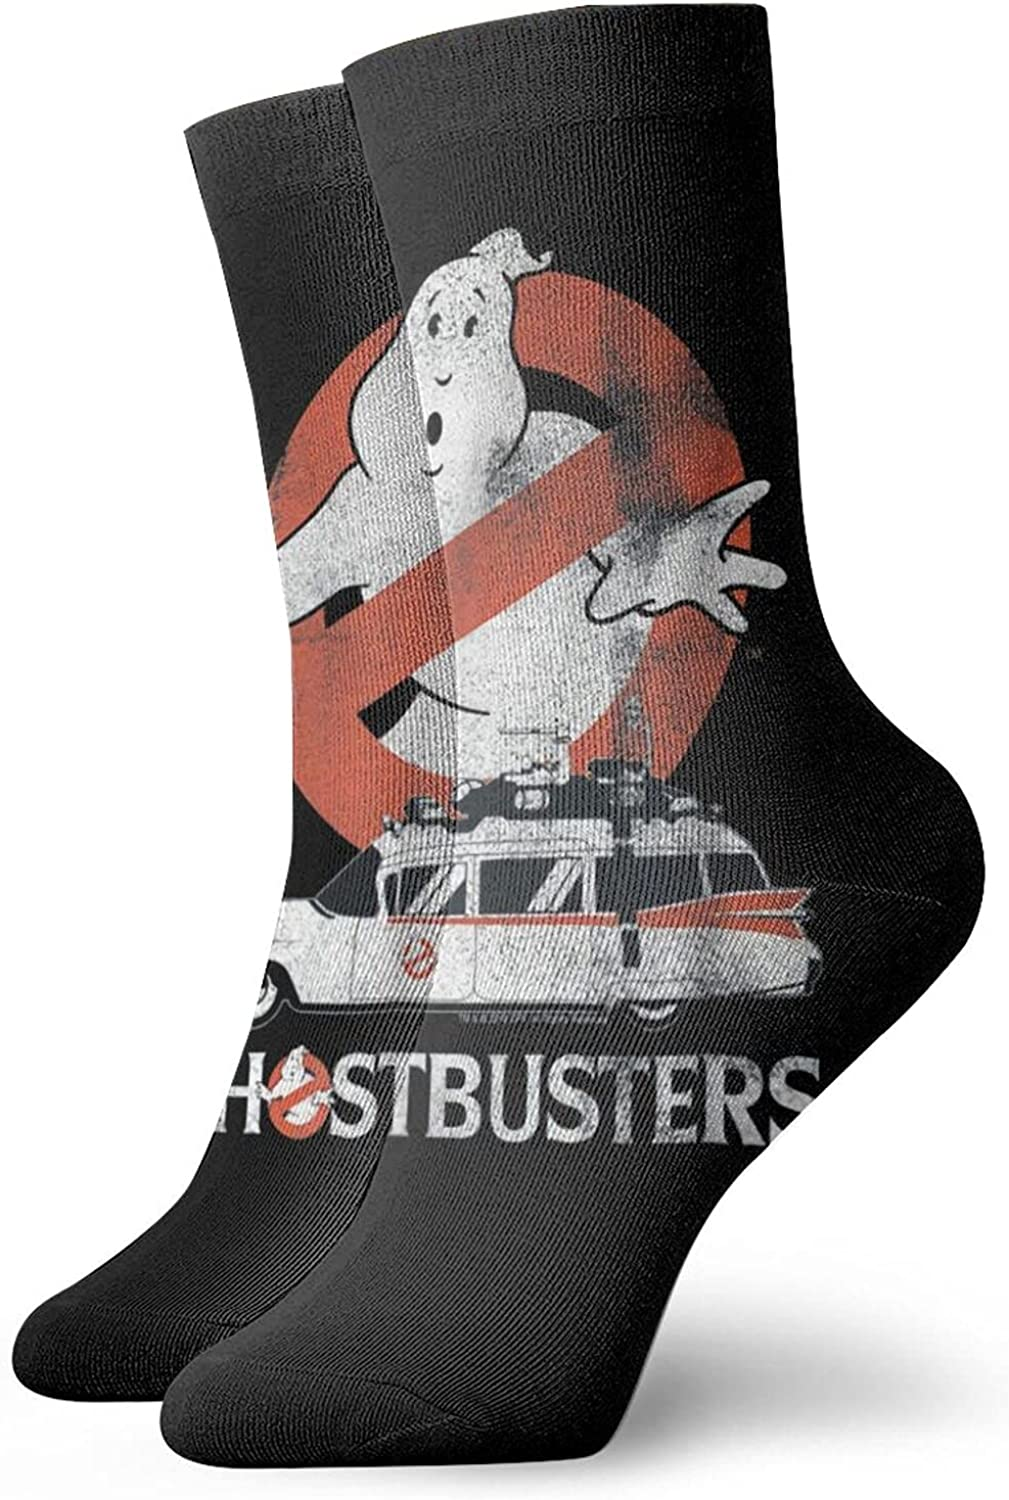 Ghostbusters Originalinteresting Socks Are Lightweight, Hard-Wearing, And Sweat-Absorbing. Effortlessmale And Female Adults Welcome